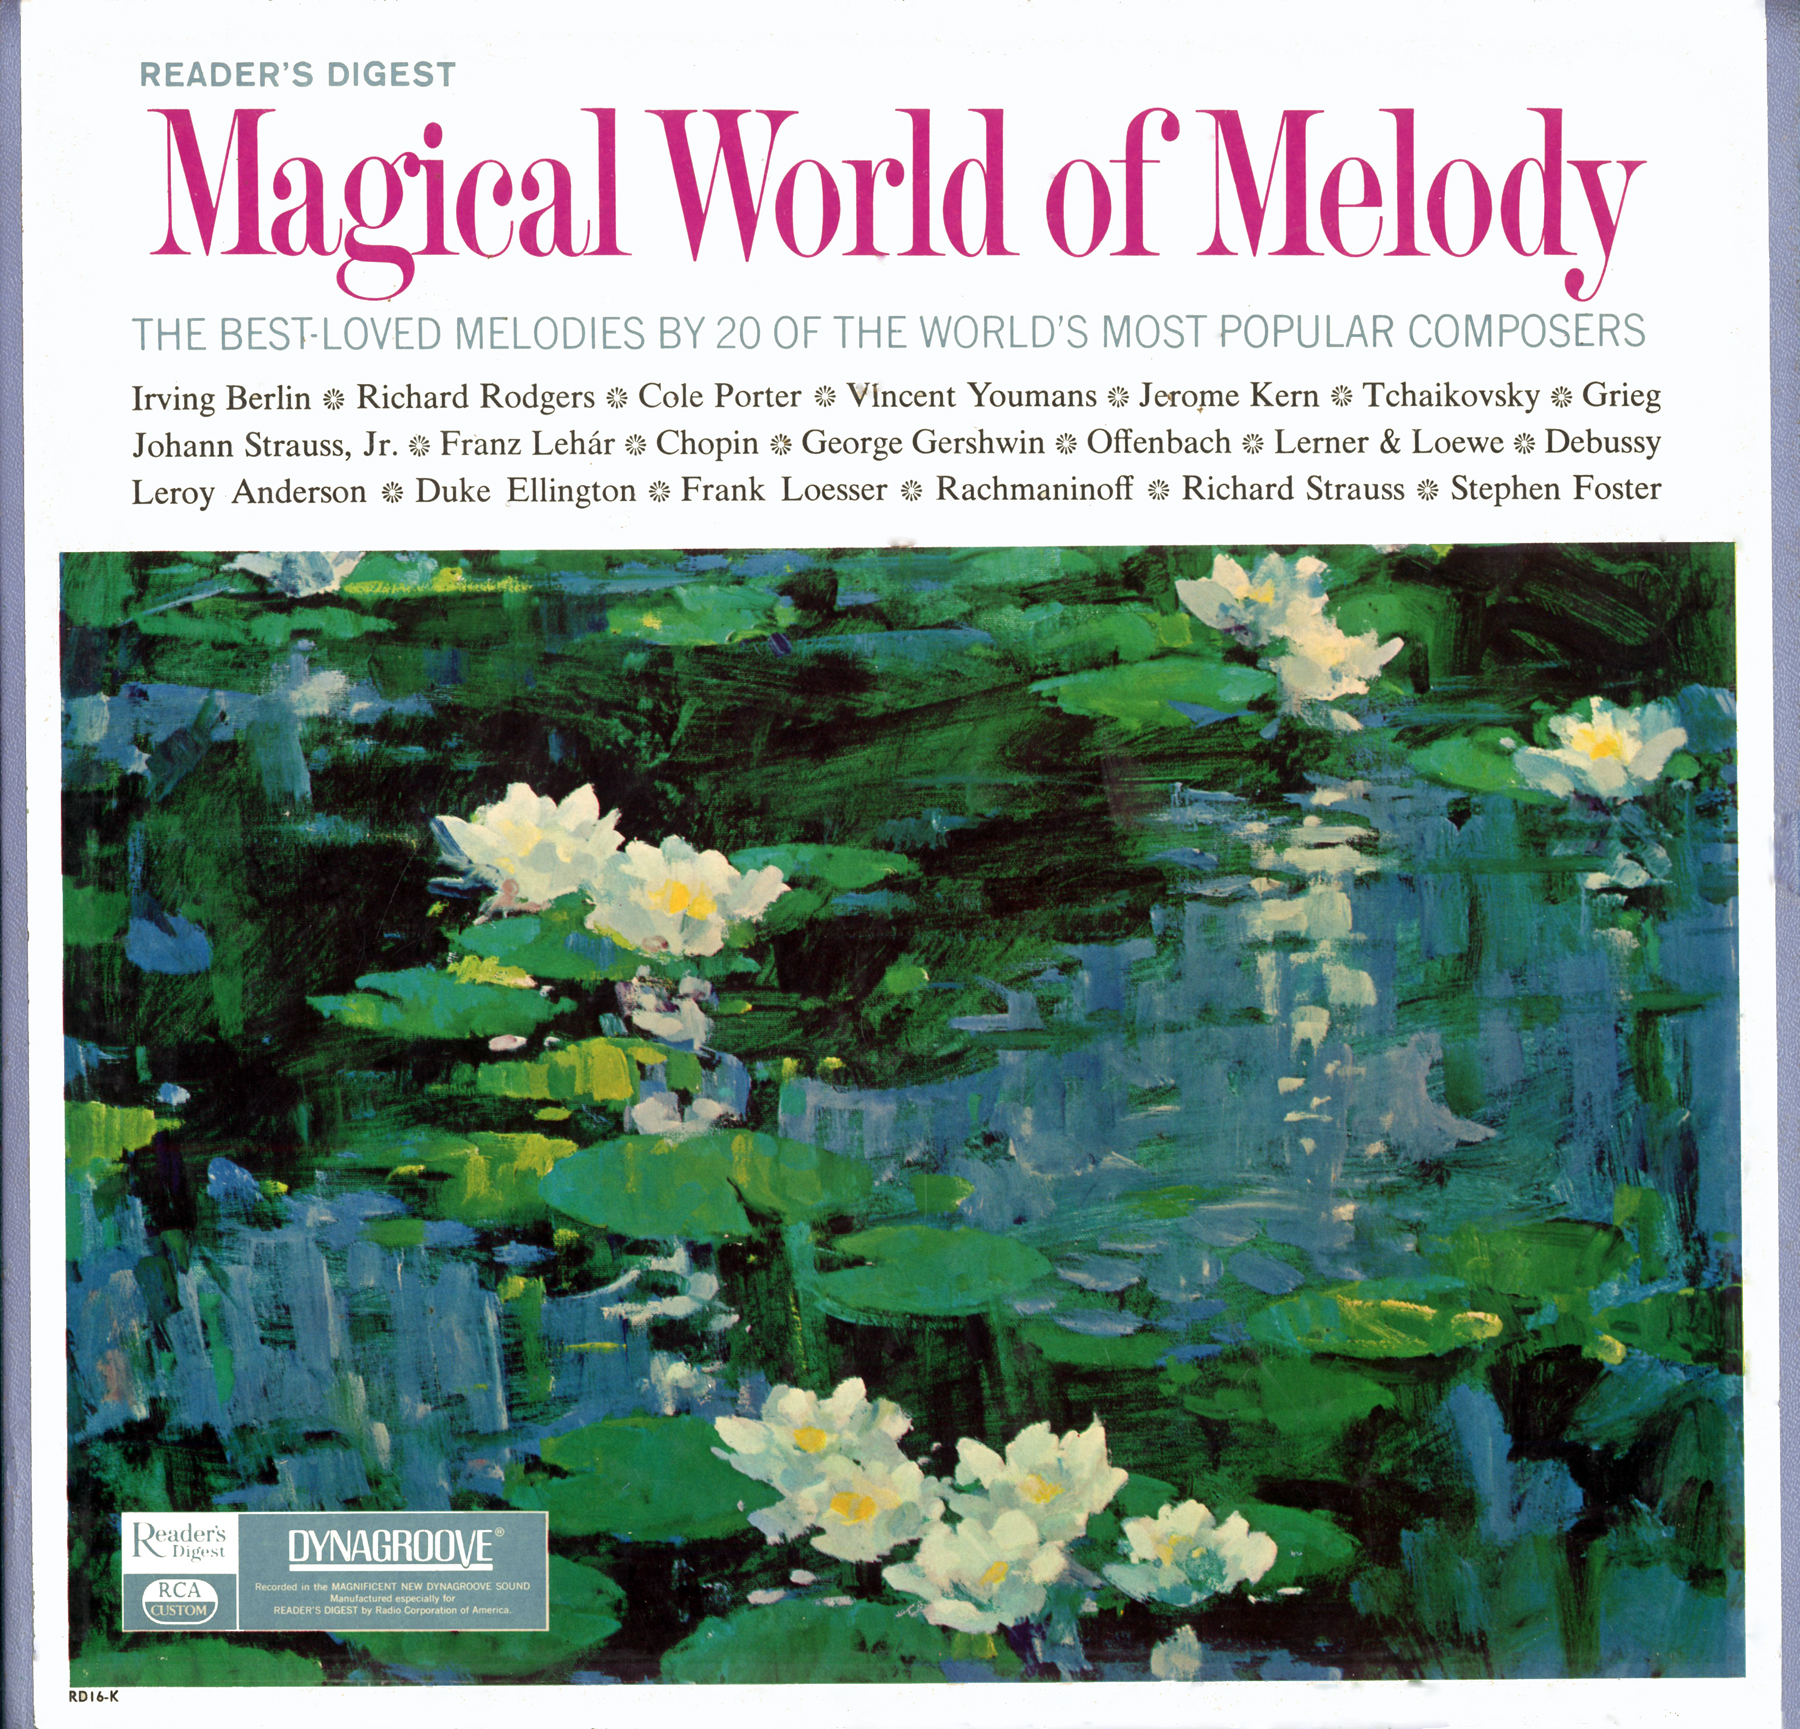 RD16k - Magical World Of Melody - RD16K on CD